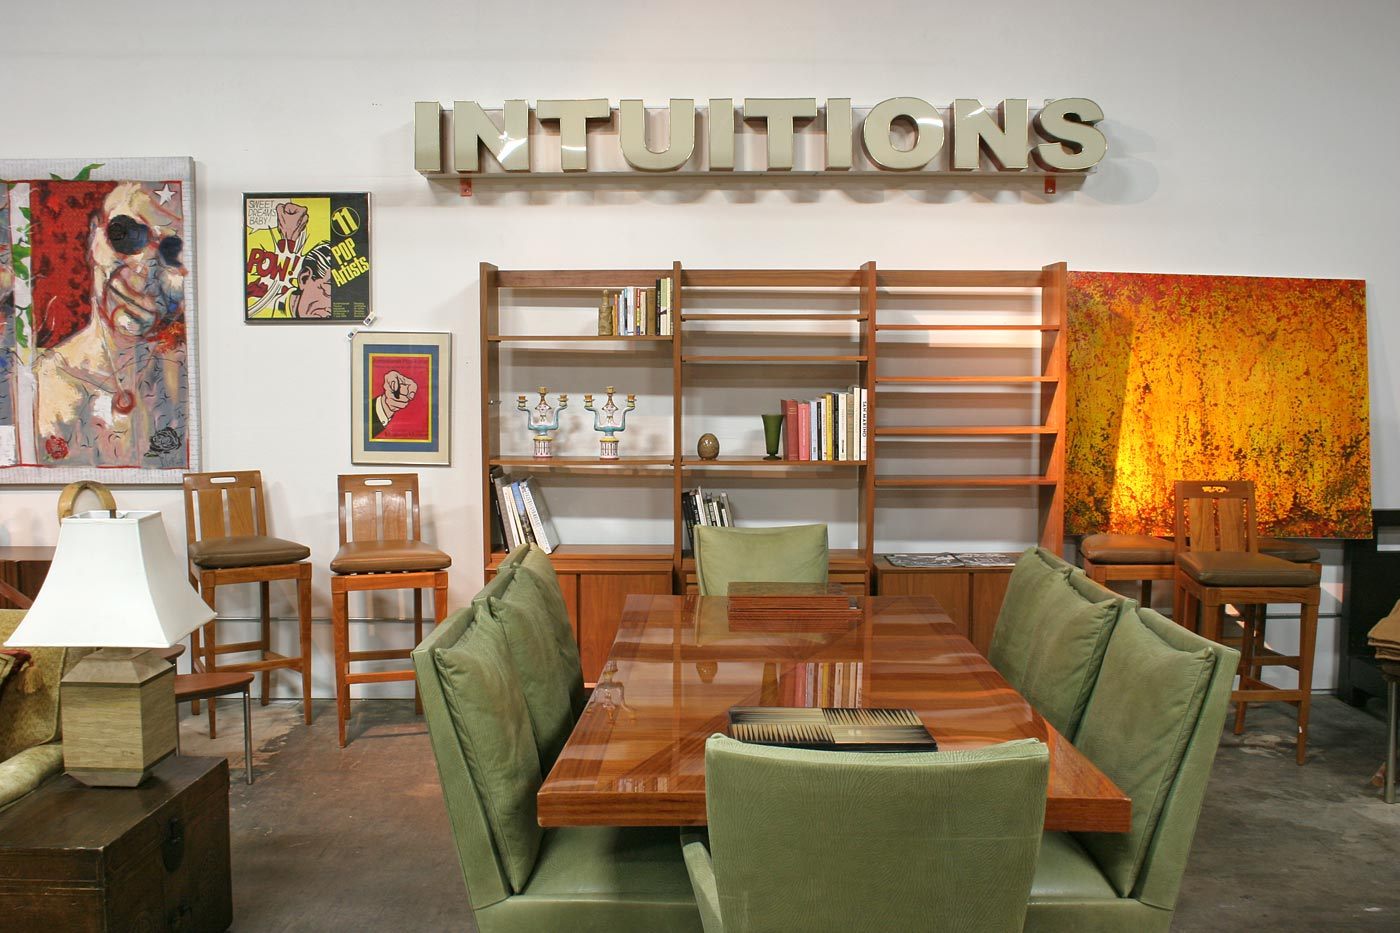 La S Coolest Home Goods Stores For Furniture Decor And More